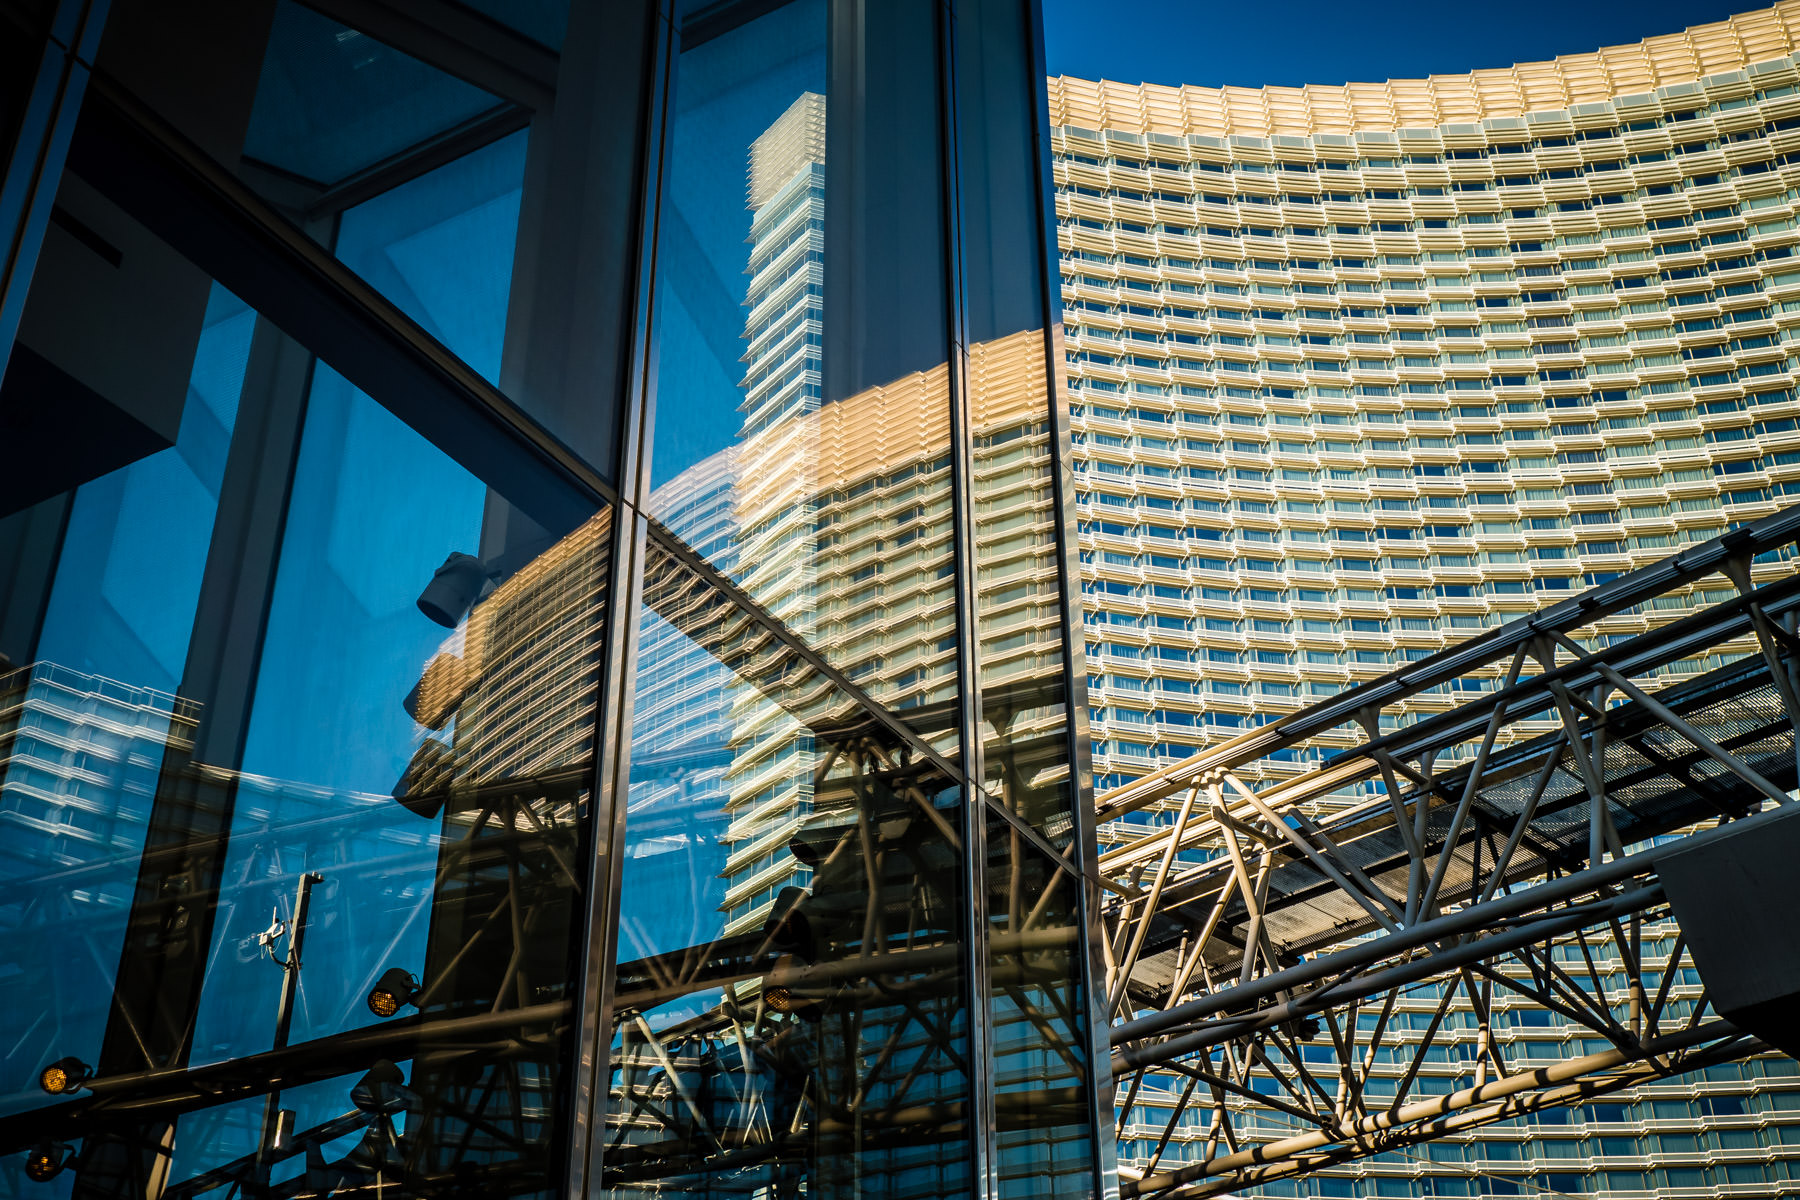 The track for the CityCenter tram, reflected in the lobby windows of one of the Veer Towers as the Aria rises into the background at CityCenter, Las Vegas.